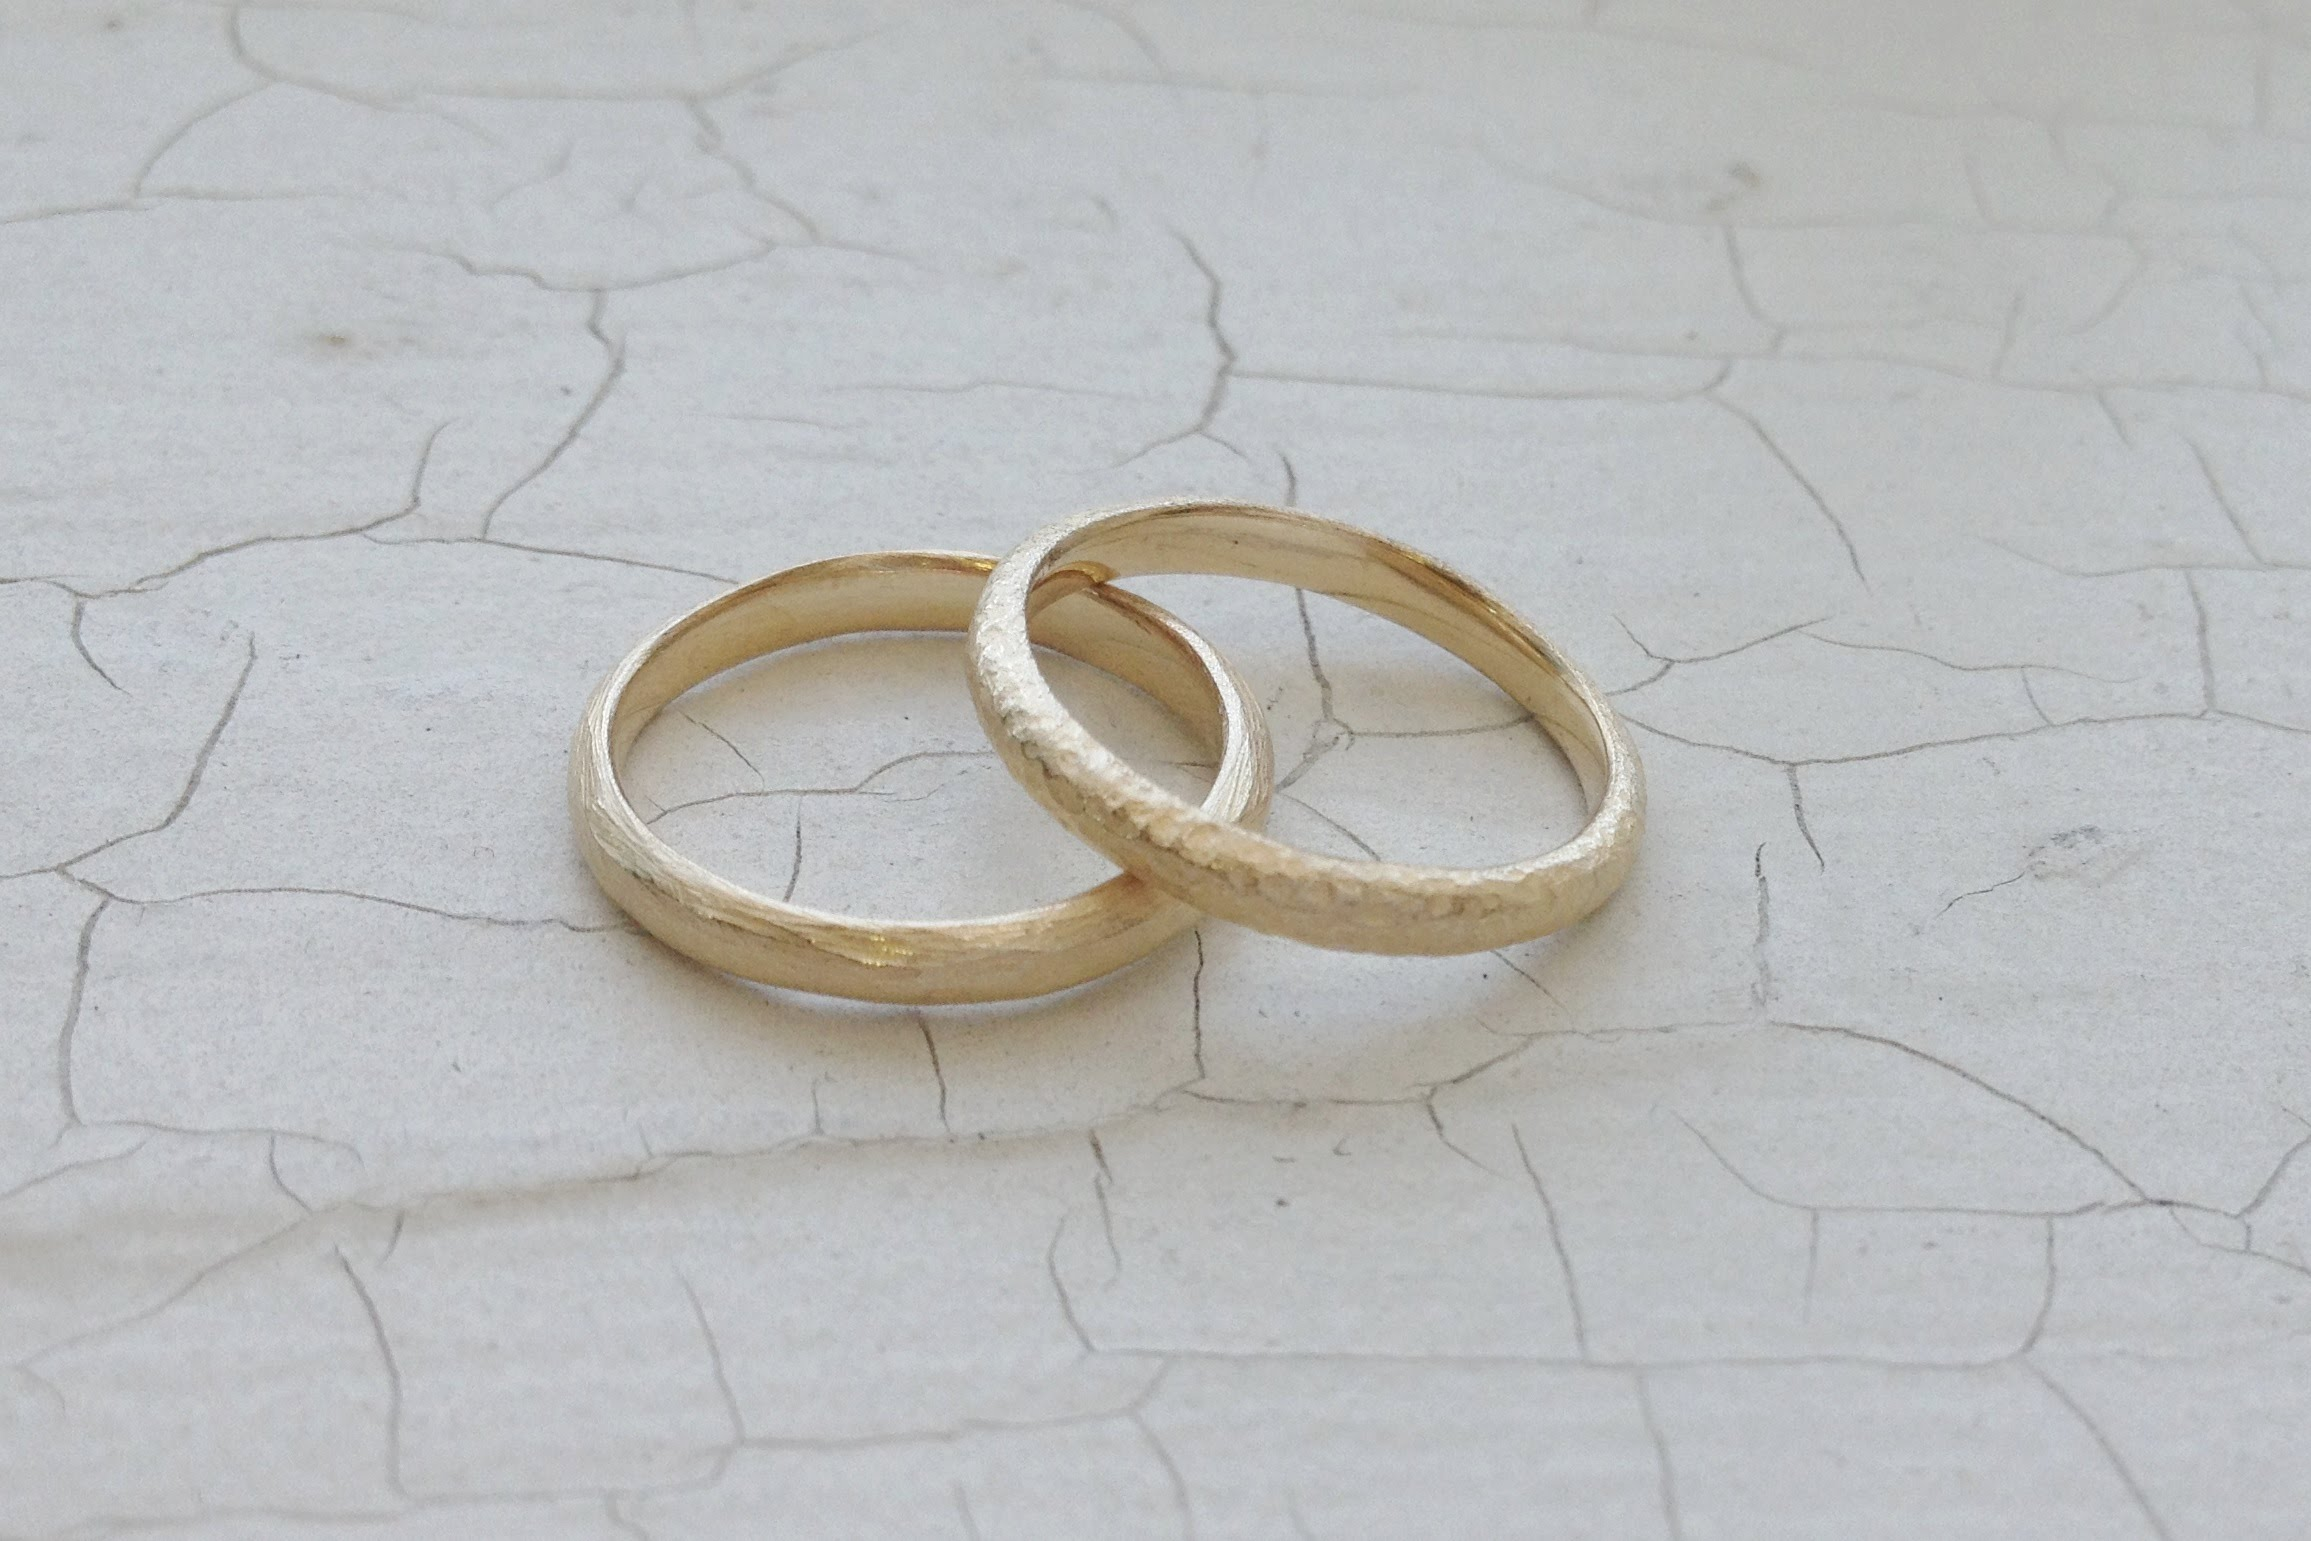 JAMIE + ASHLEY RINGS - driftwood and pebble texture, 14k yellow gold